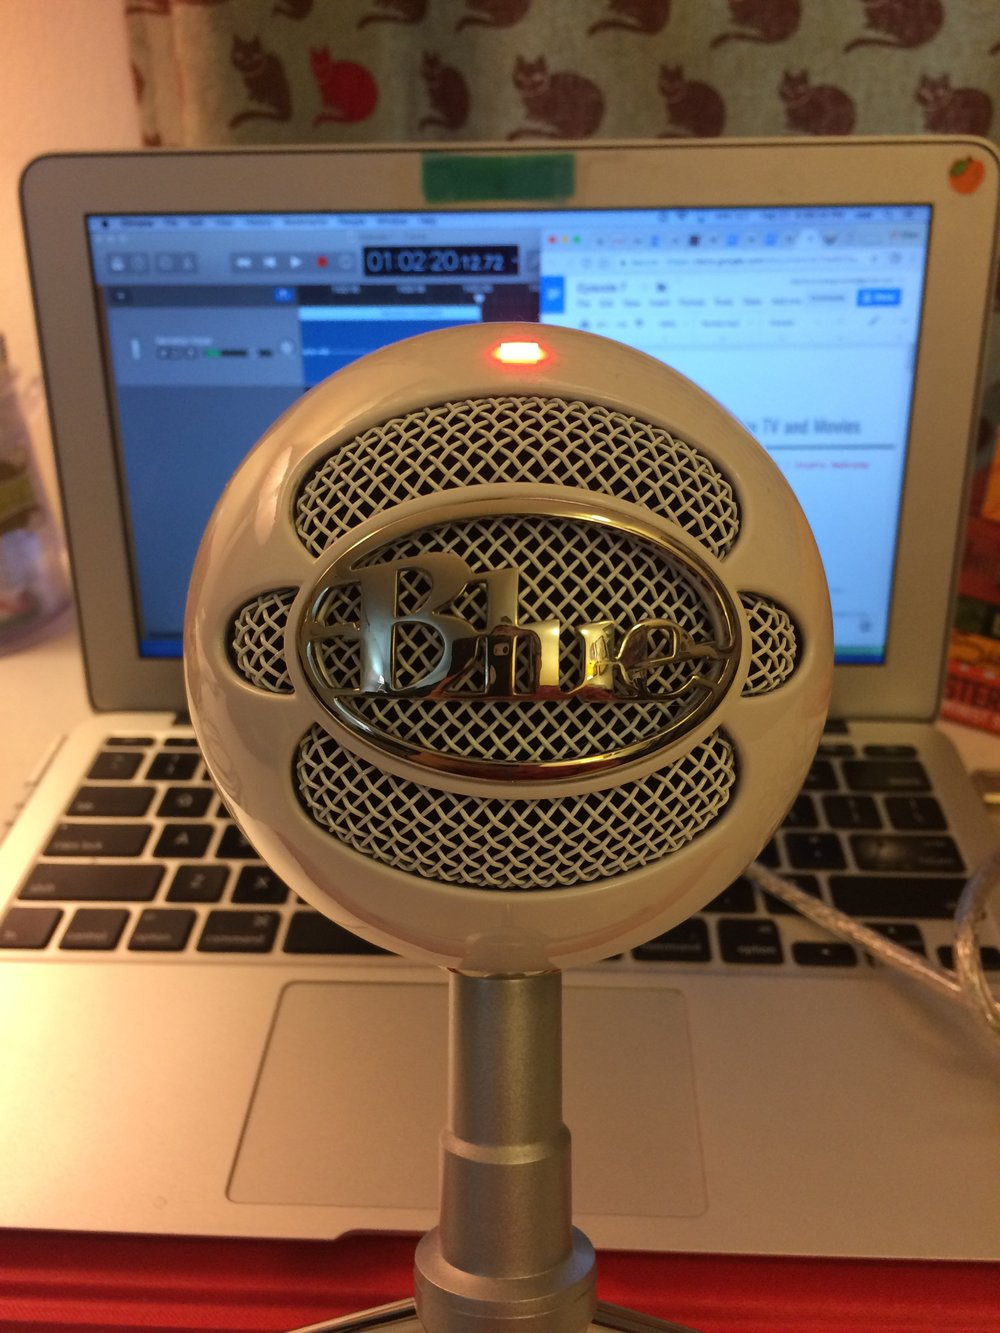 My view while recording. My beautiful Snowball mic. The Snowball and the Yeti are the two mics I most heard recommended from other pocasters, and as the snowball is less expensive (though still a hit to the pocketbook, yeah, I still carry a pocketbook. What of it?) it's the one I went with. Out of focus on the laptop screen are the two things I need to record,my script and Garageband (Garageband is considered an inferior software by most podcasters, but I don't have room for anything else on my laptop).